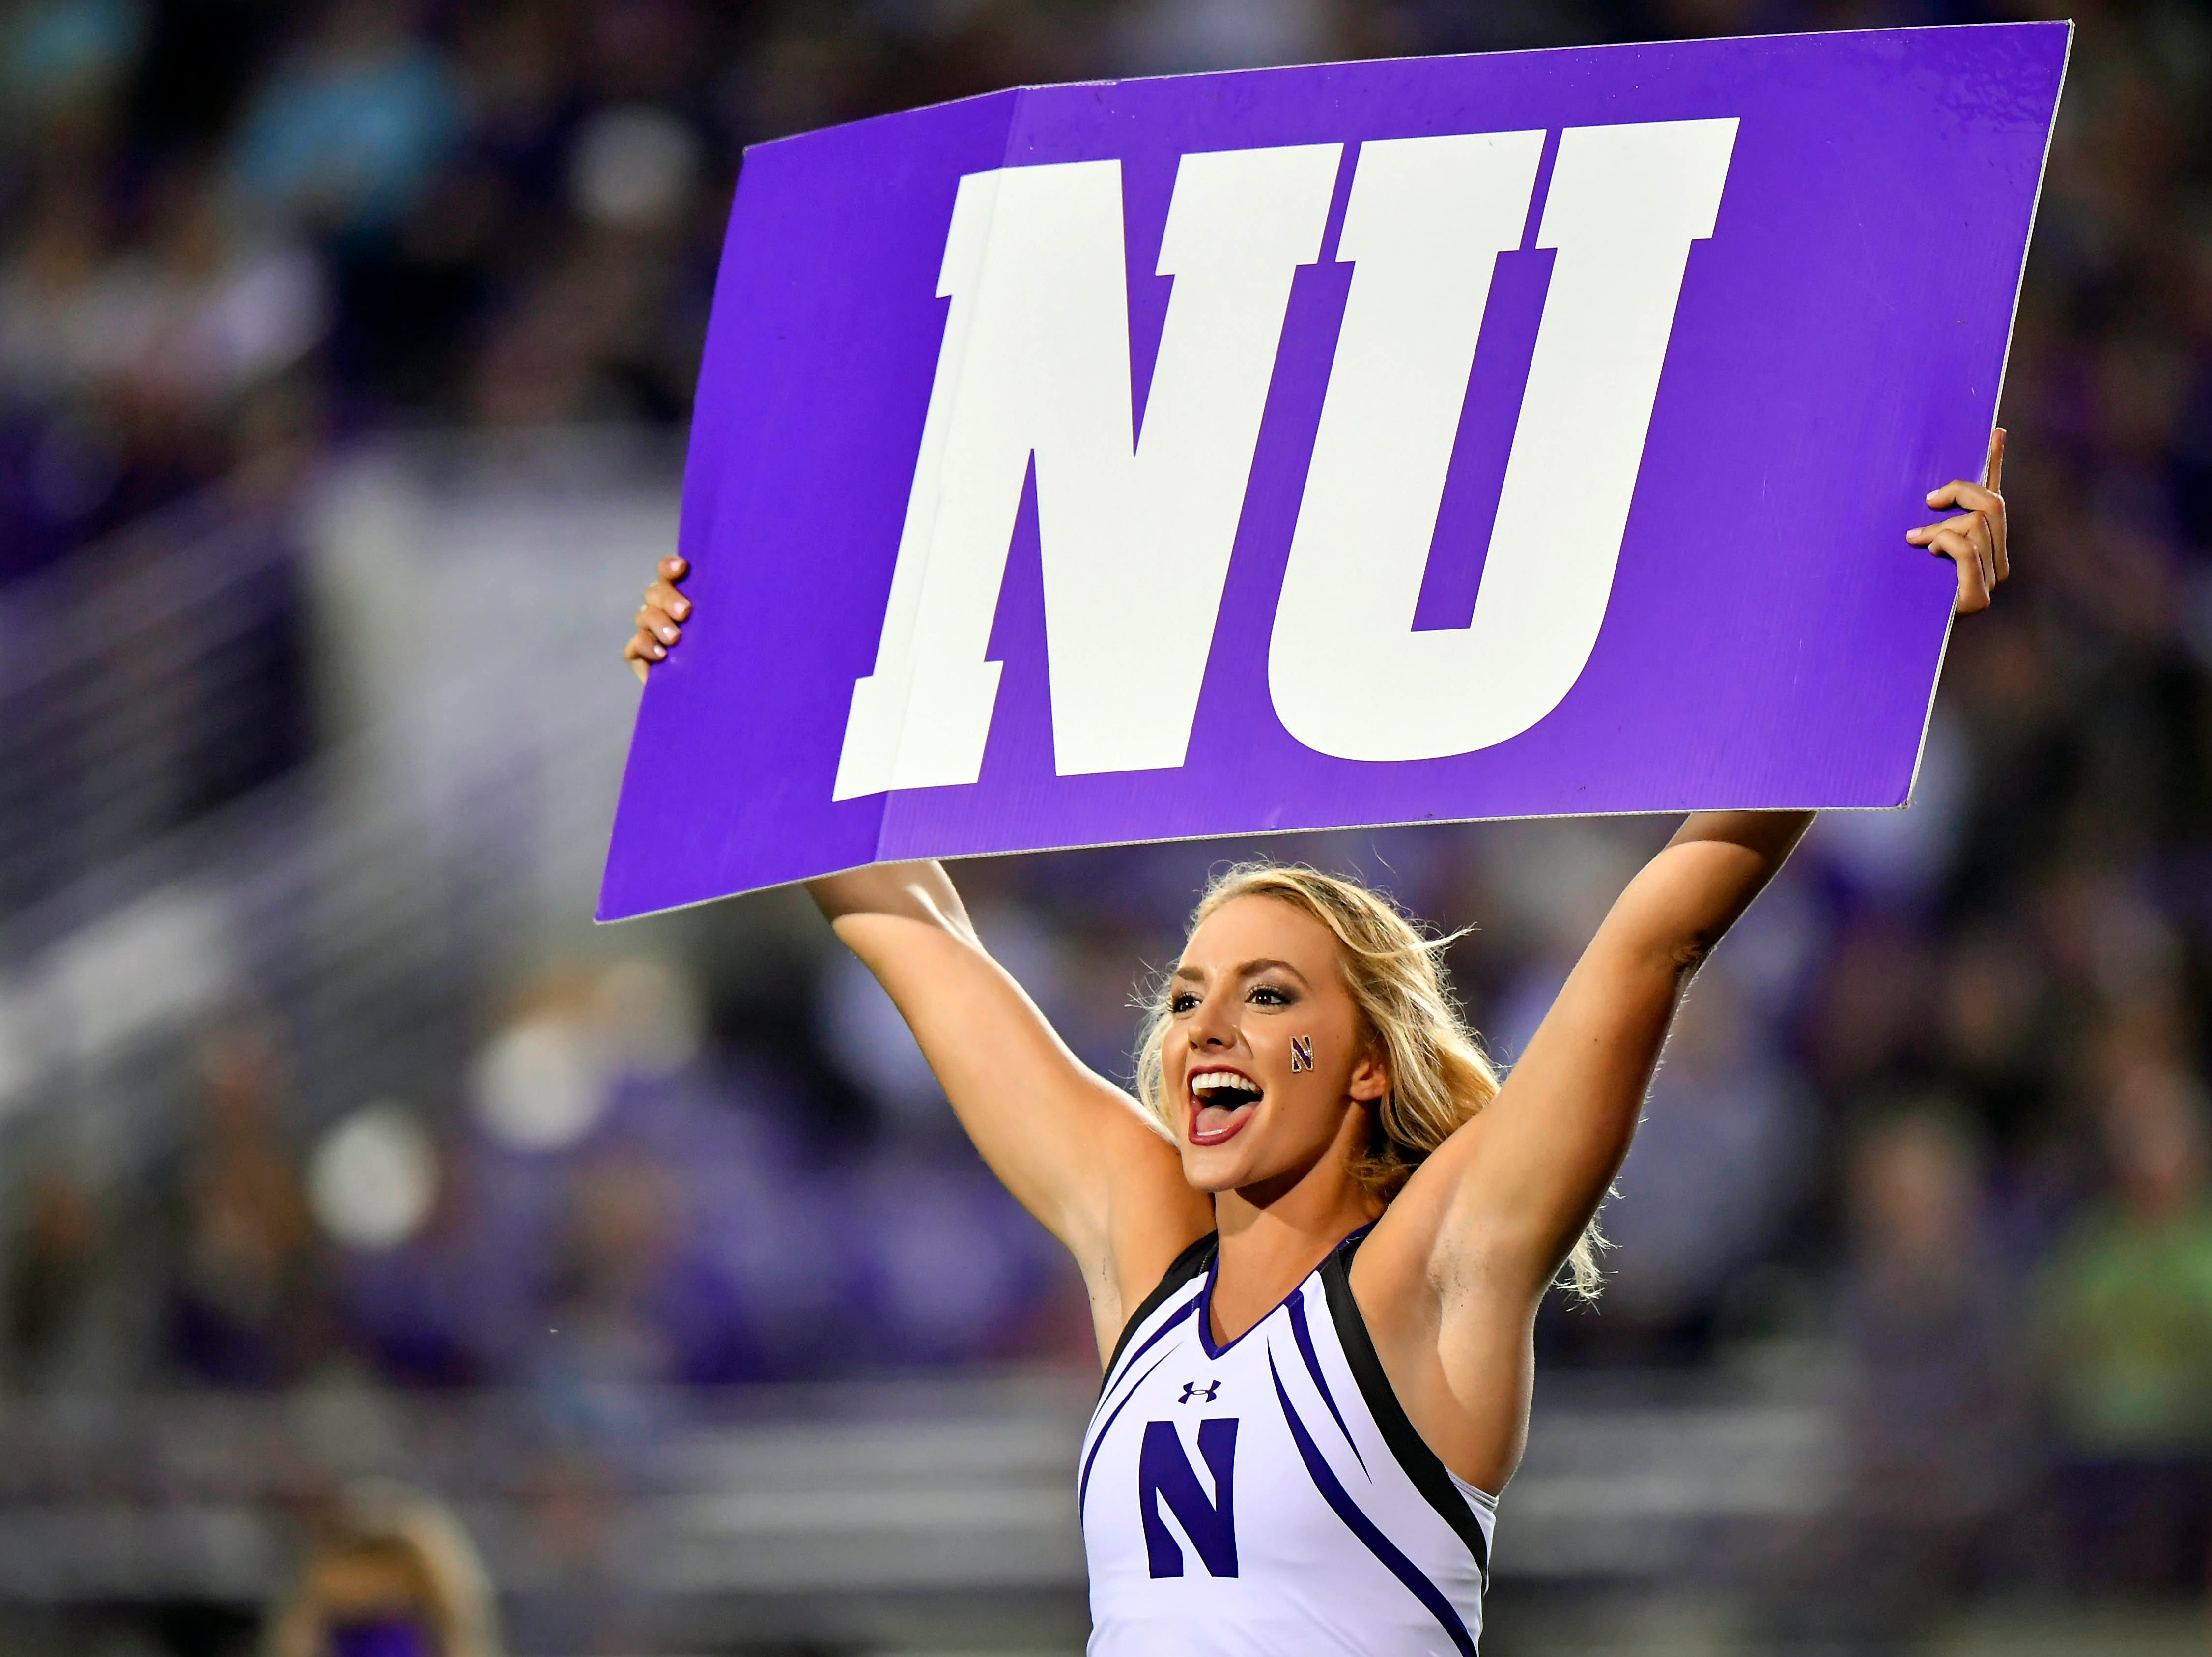 Week 3: A Northwestern Wildcats cheerleader cheers during the game against the Akron Zips at Ryan Field.